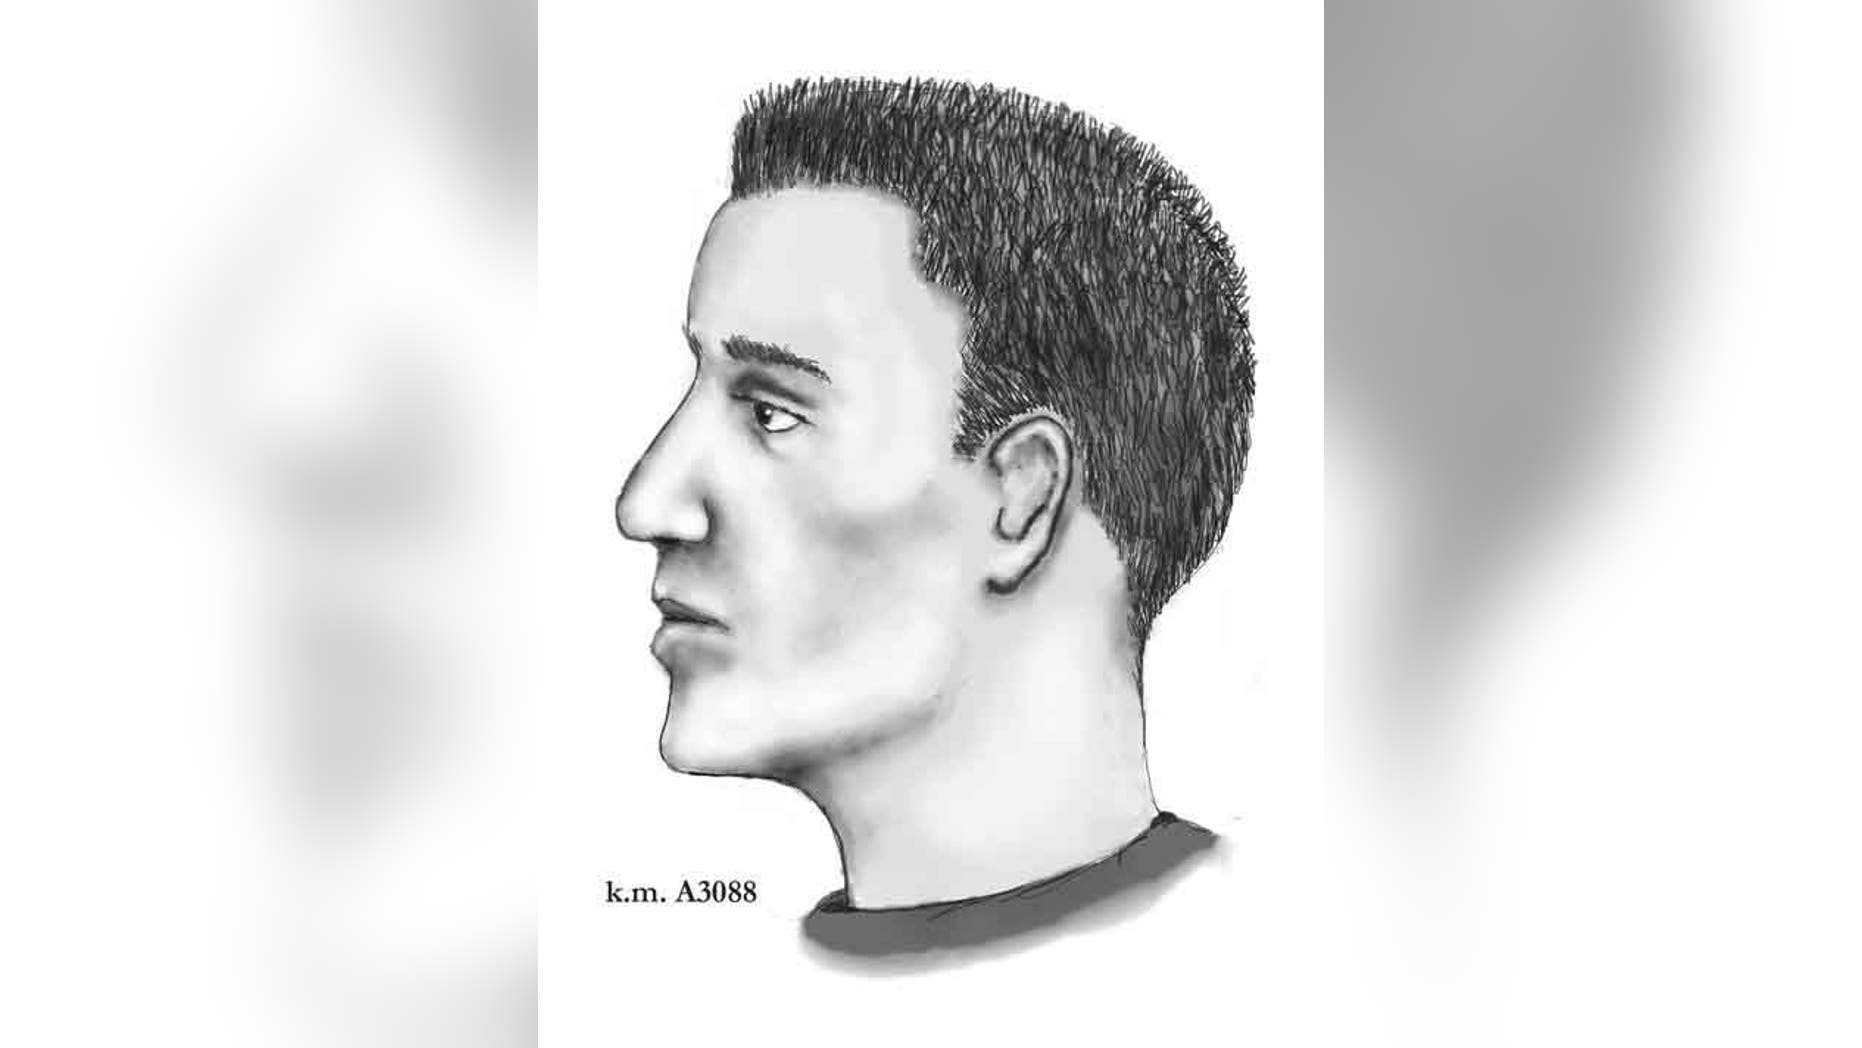 A sketch of the suspect provided by the Phoenix PD.